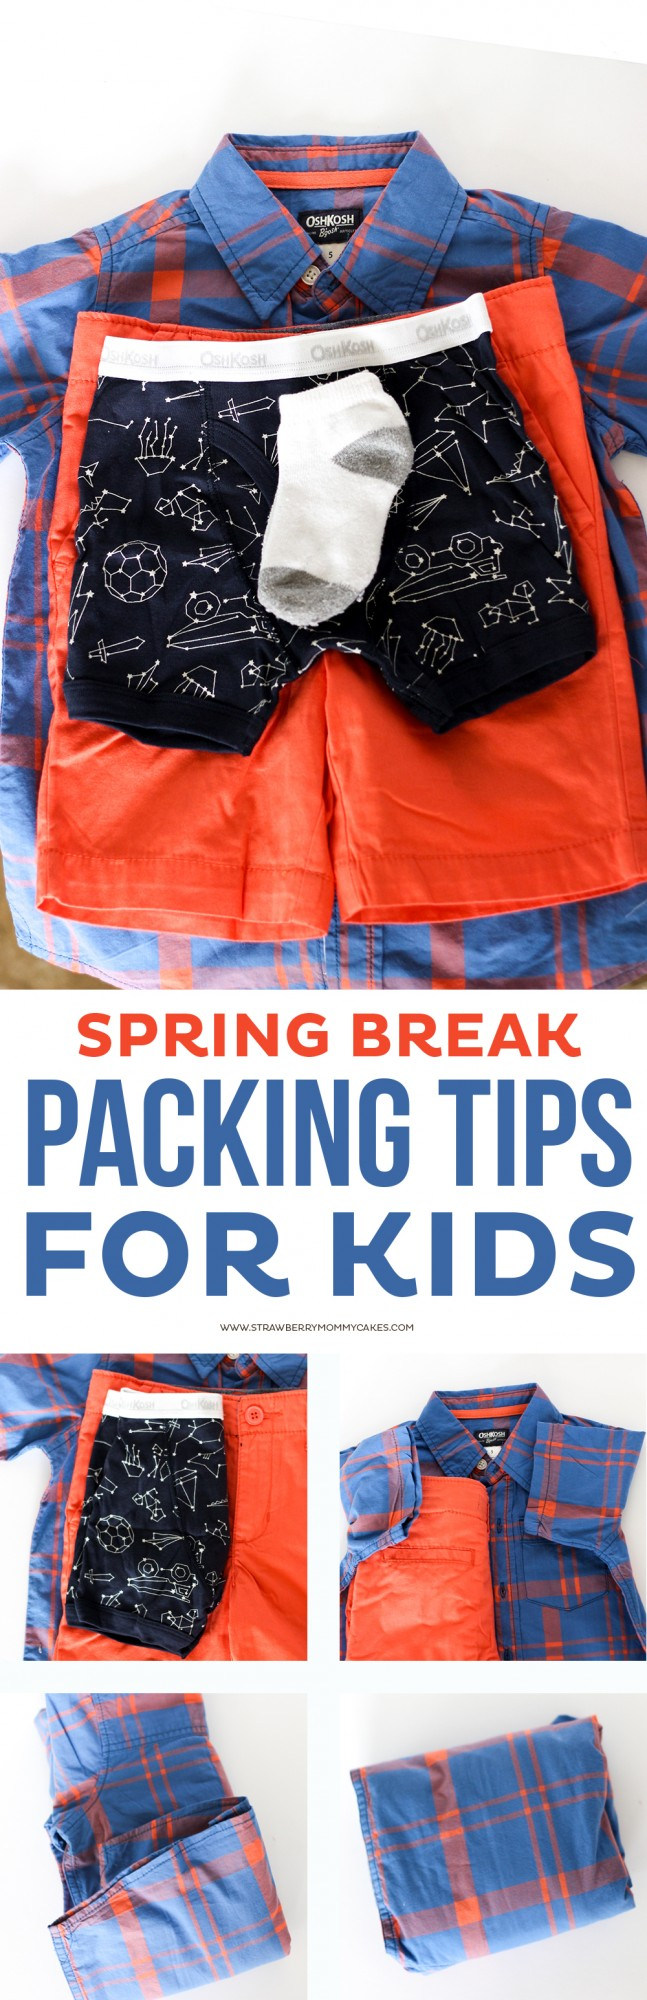 These Packing Tips for Kids will keep you organized for your Spring Break trips!